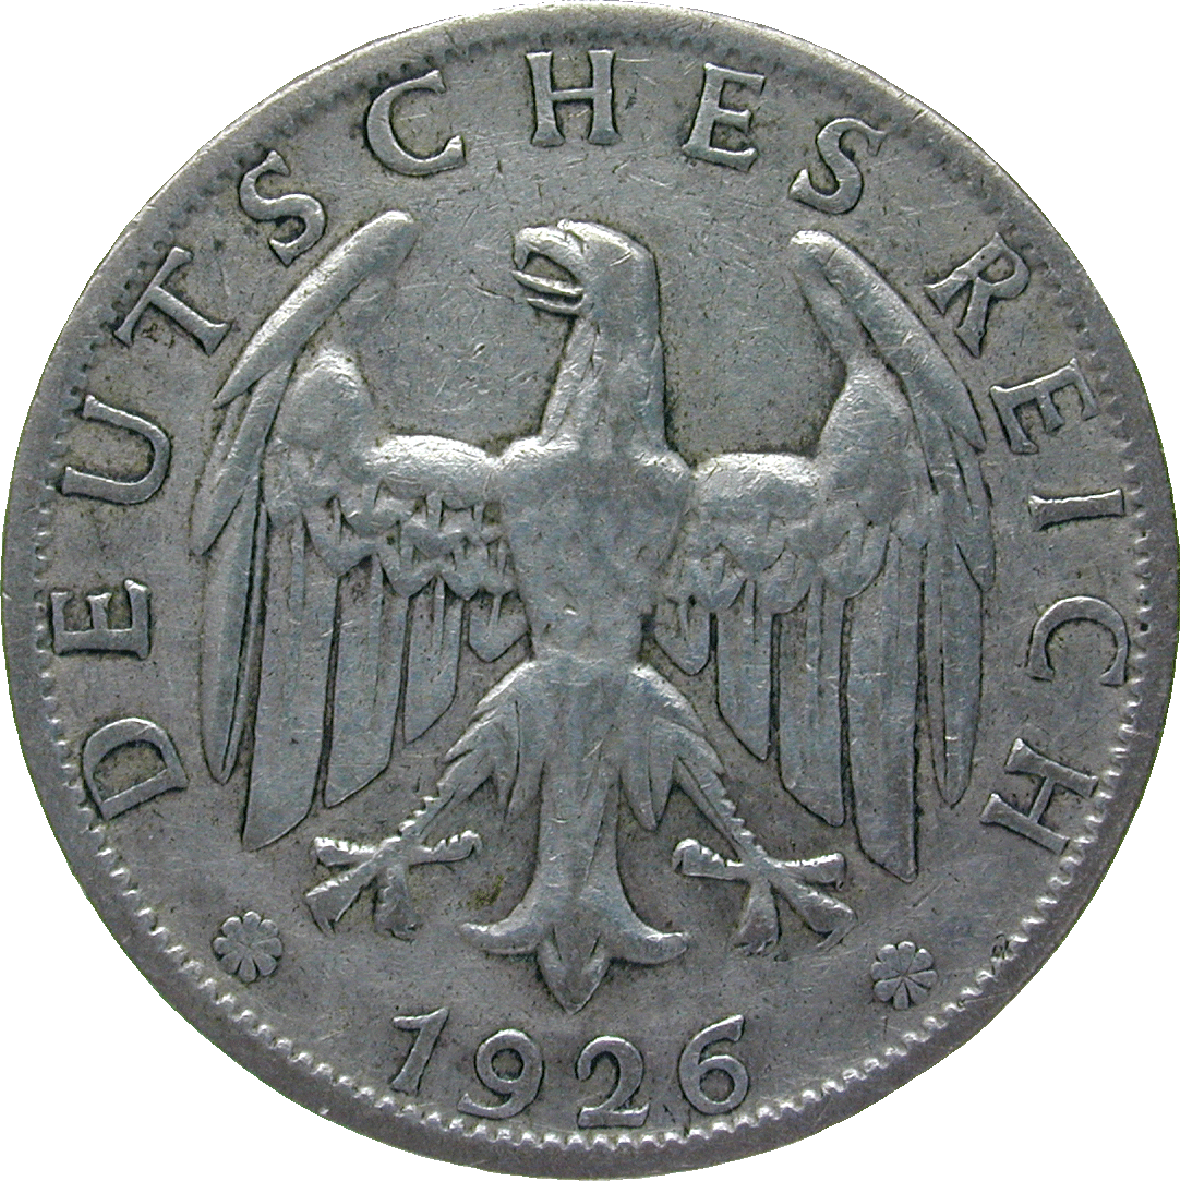 German Empire, Weimar Republic, 2 Reichsmark 1926 (obverse)